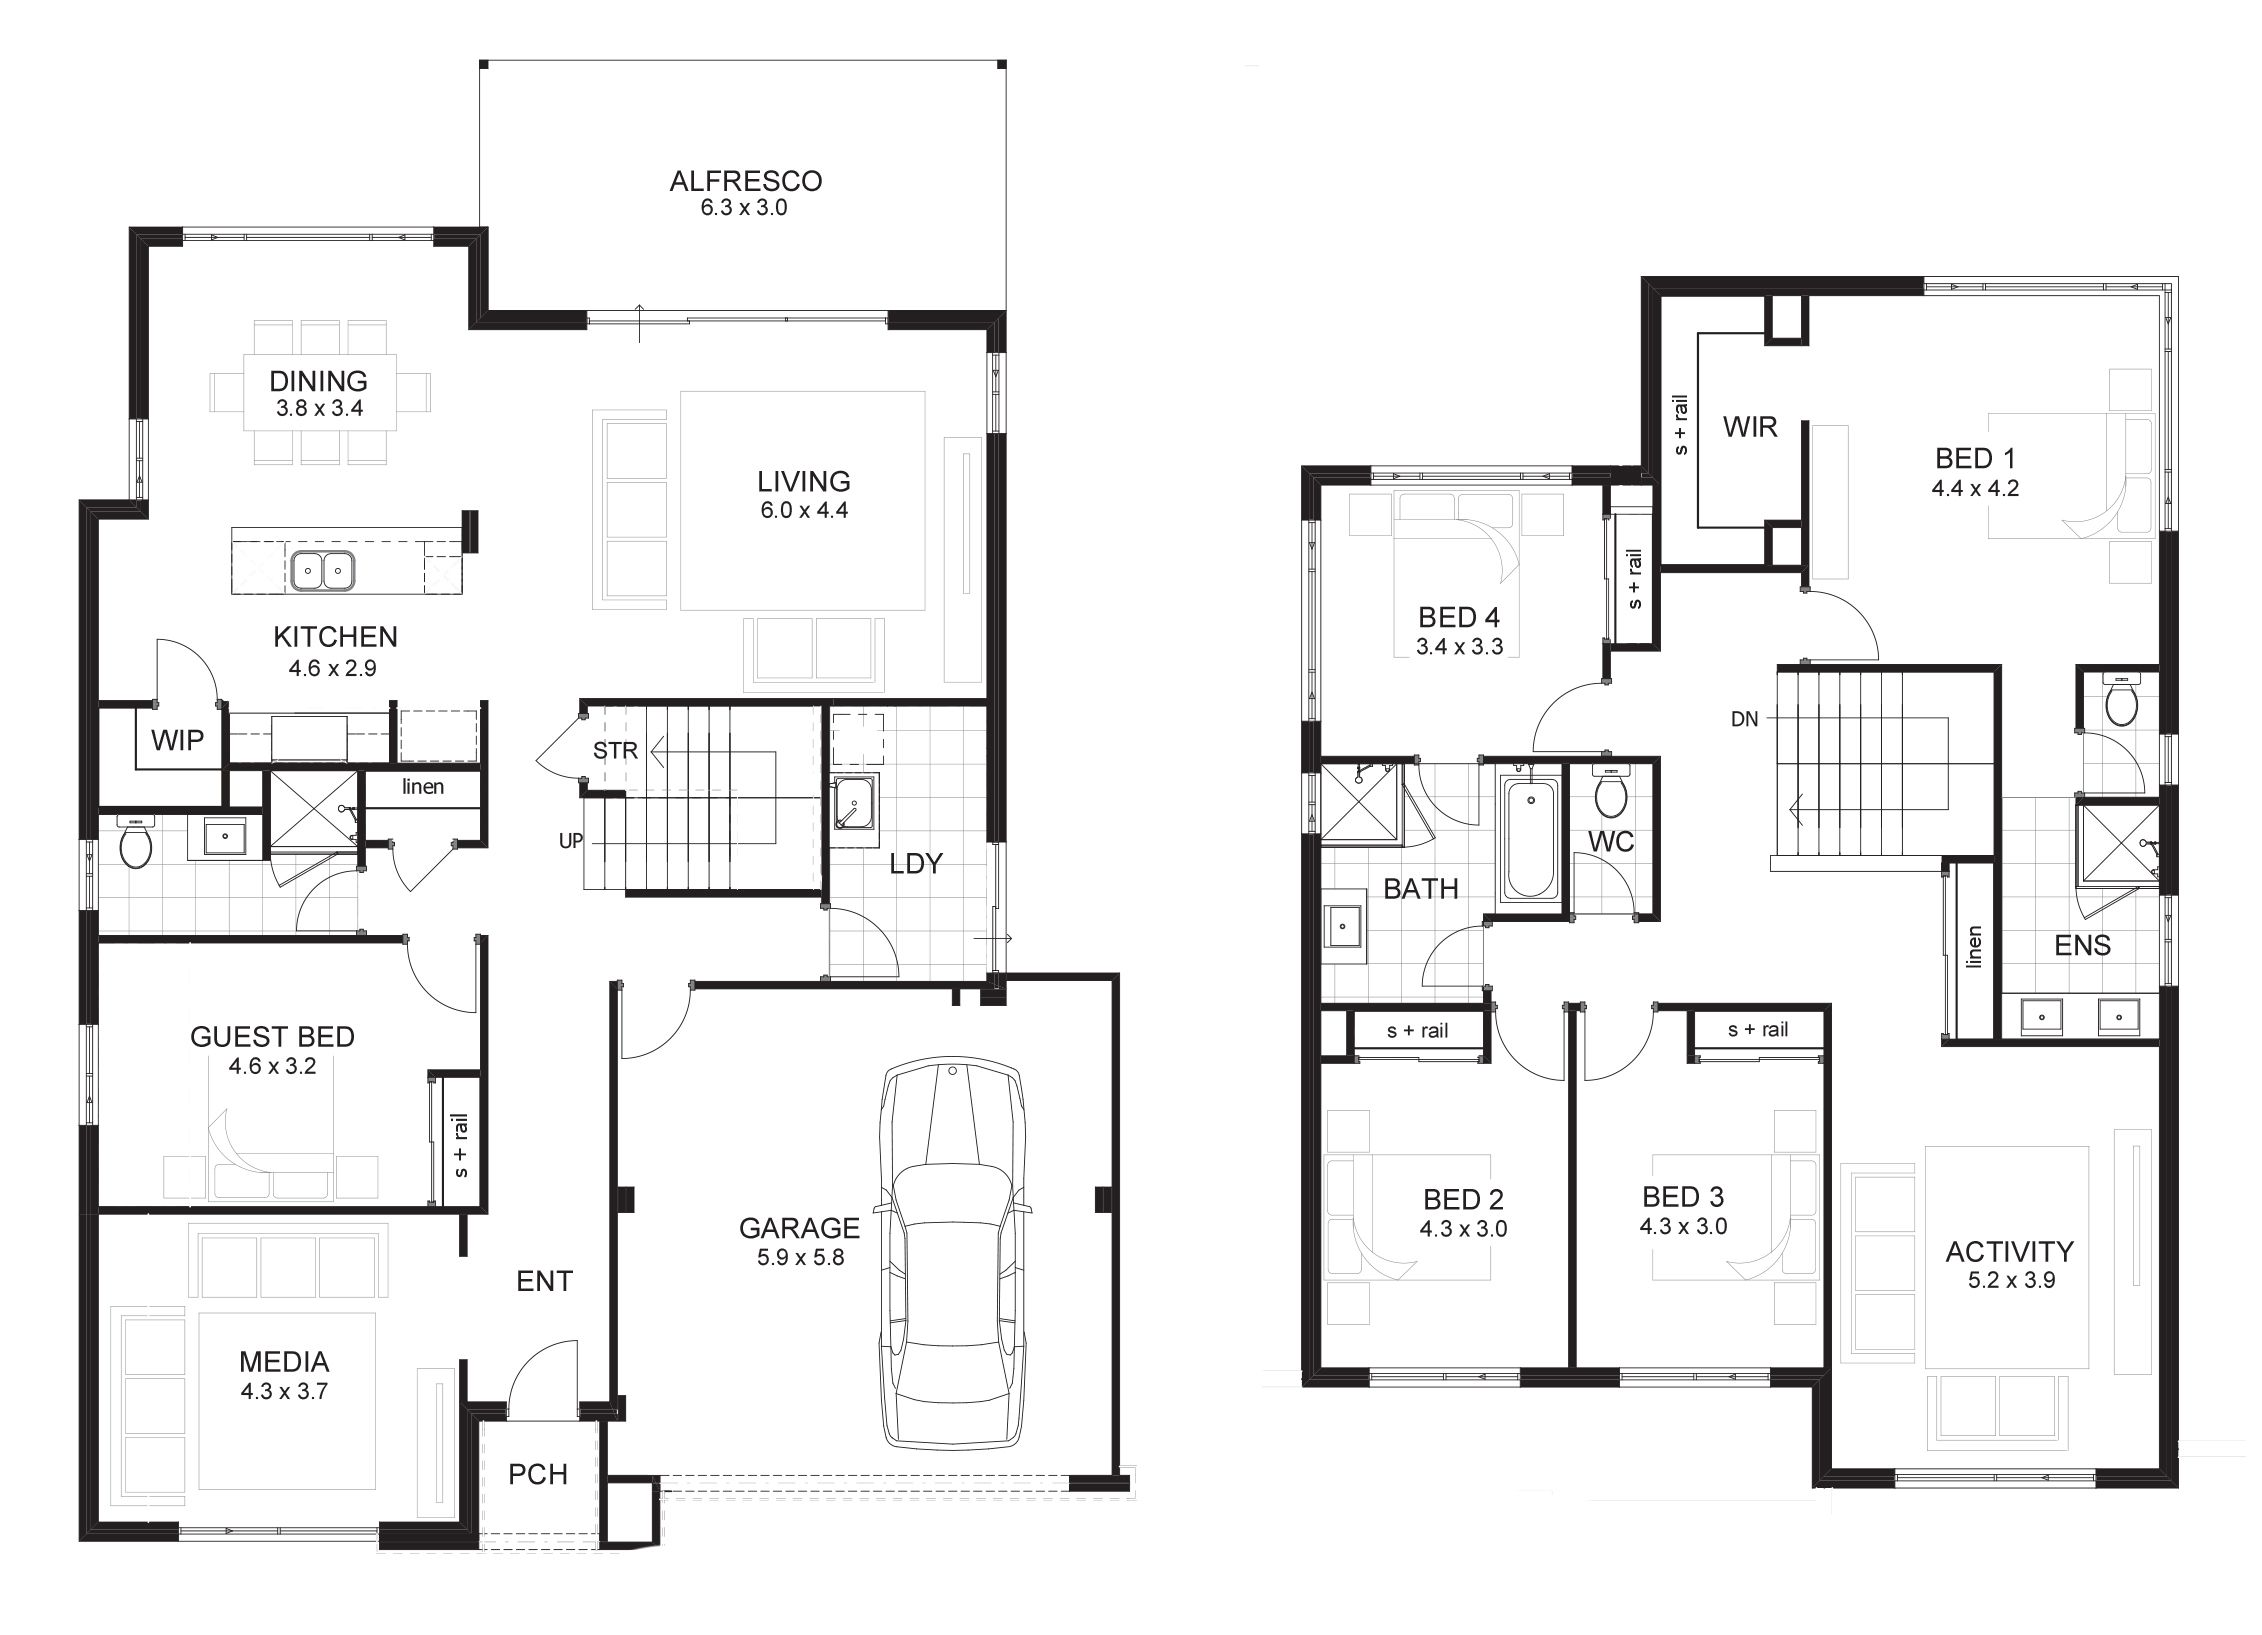 2 storey house designs and floor plans google search Two story house designs